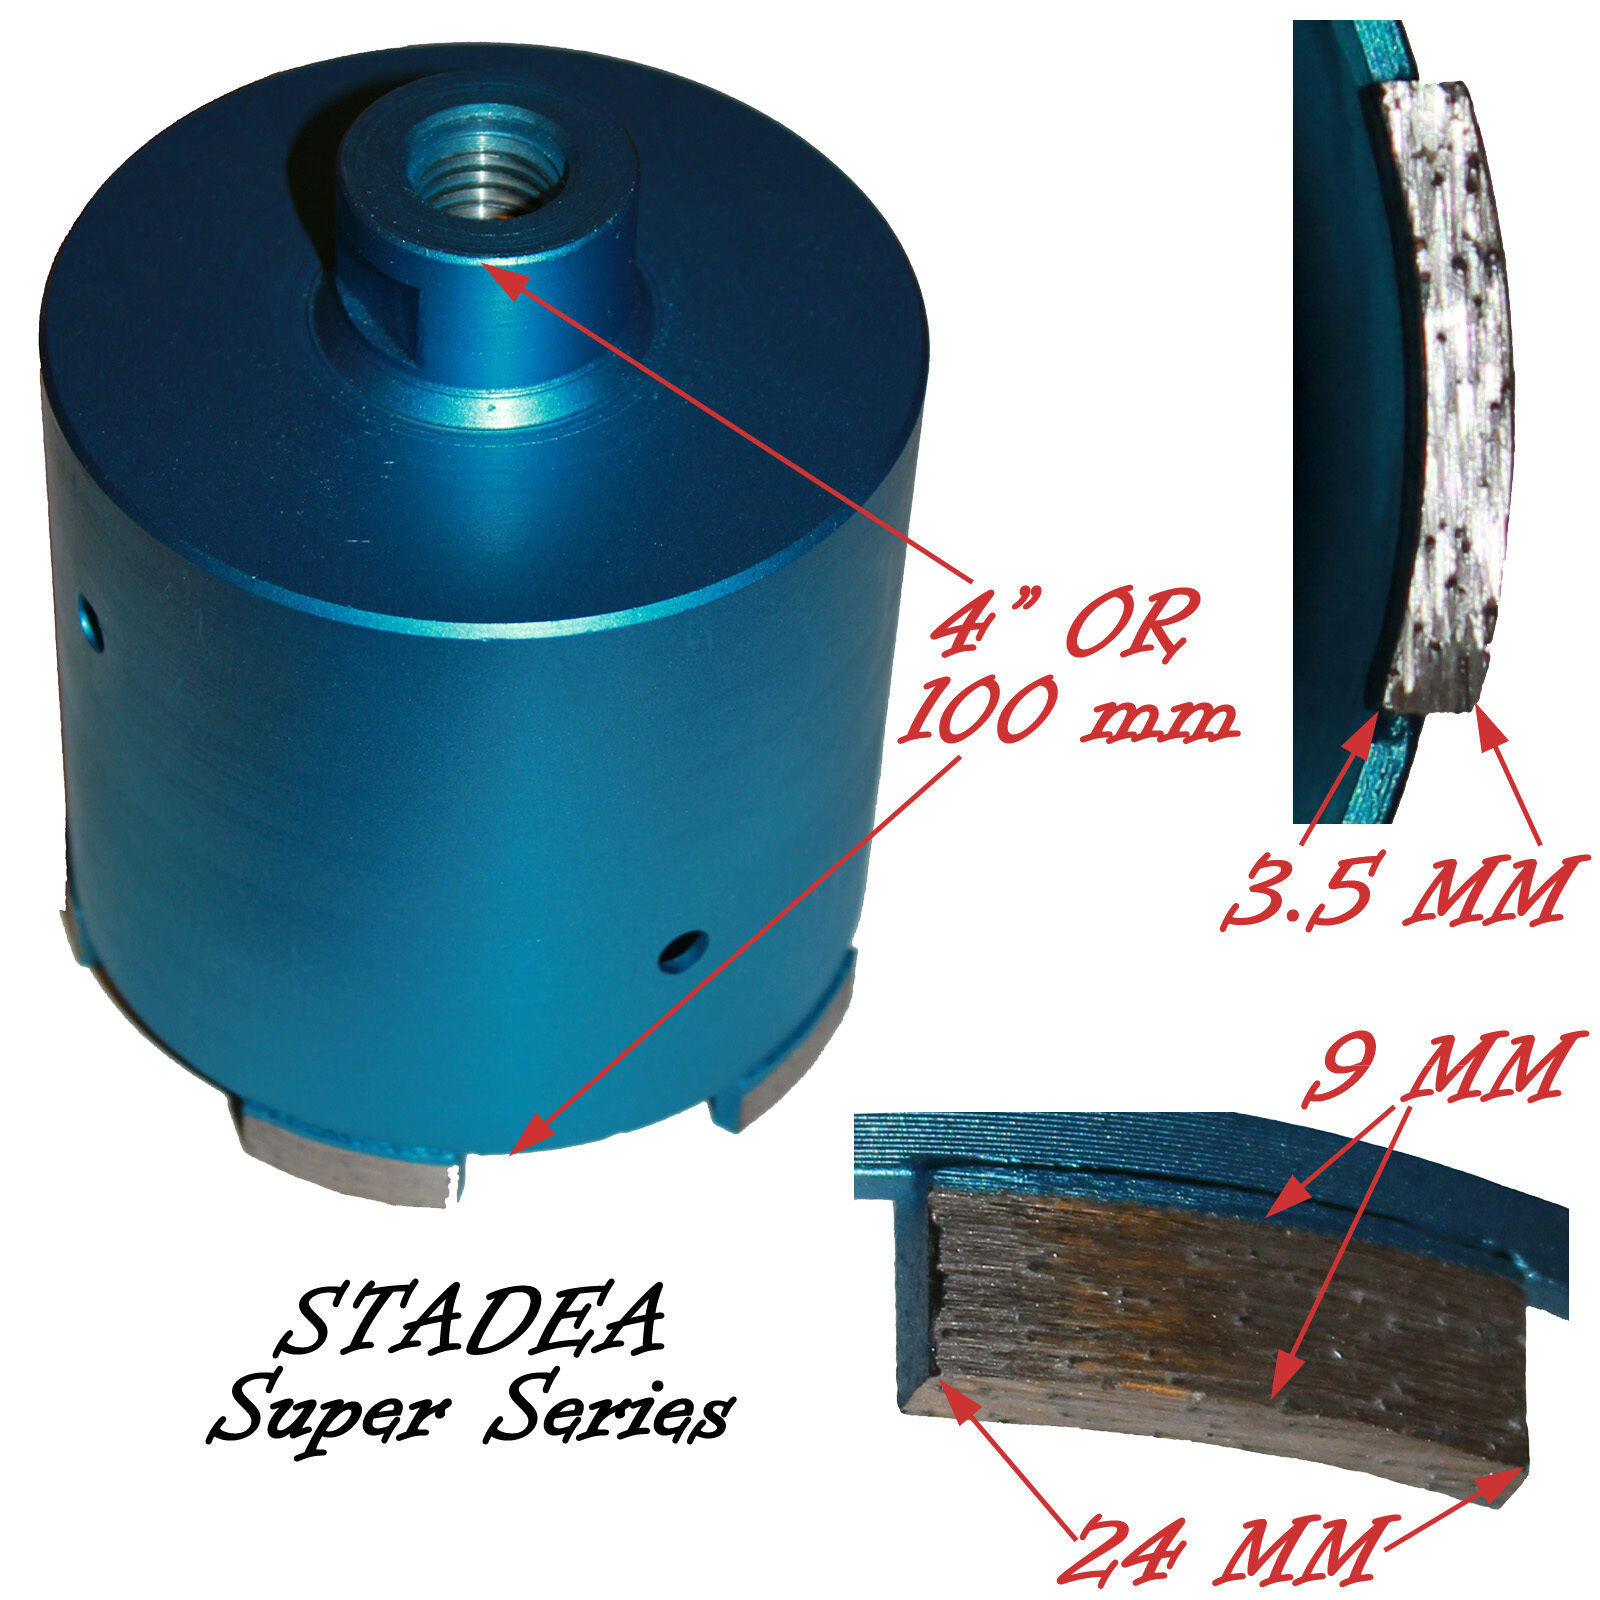 Stadea Concrete Tile 3 Inch Diamond Hole Saw Bit Core